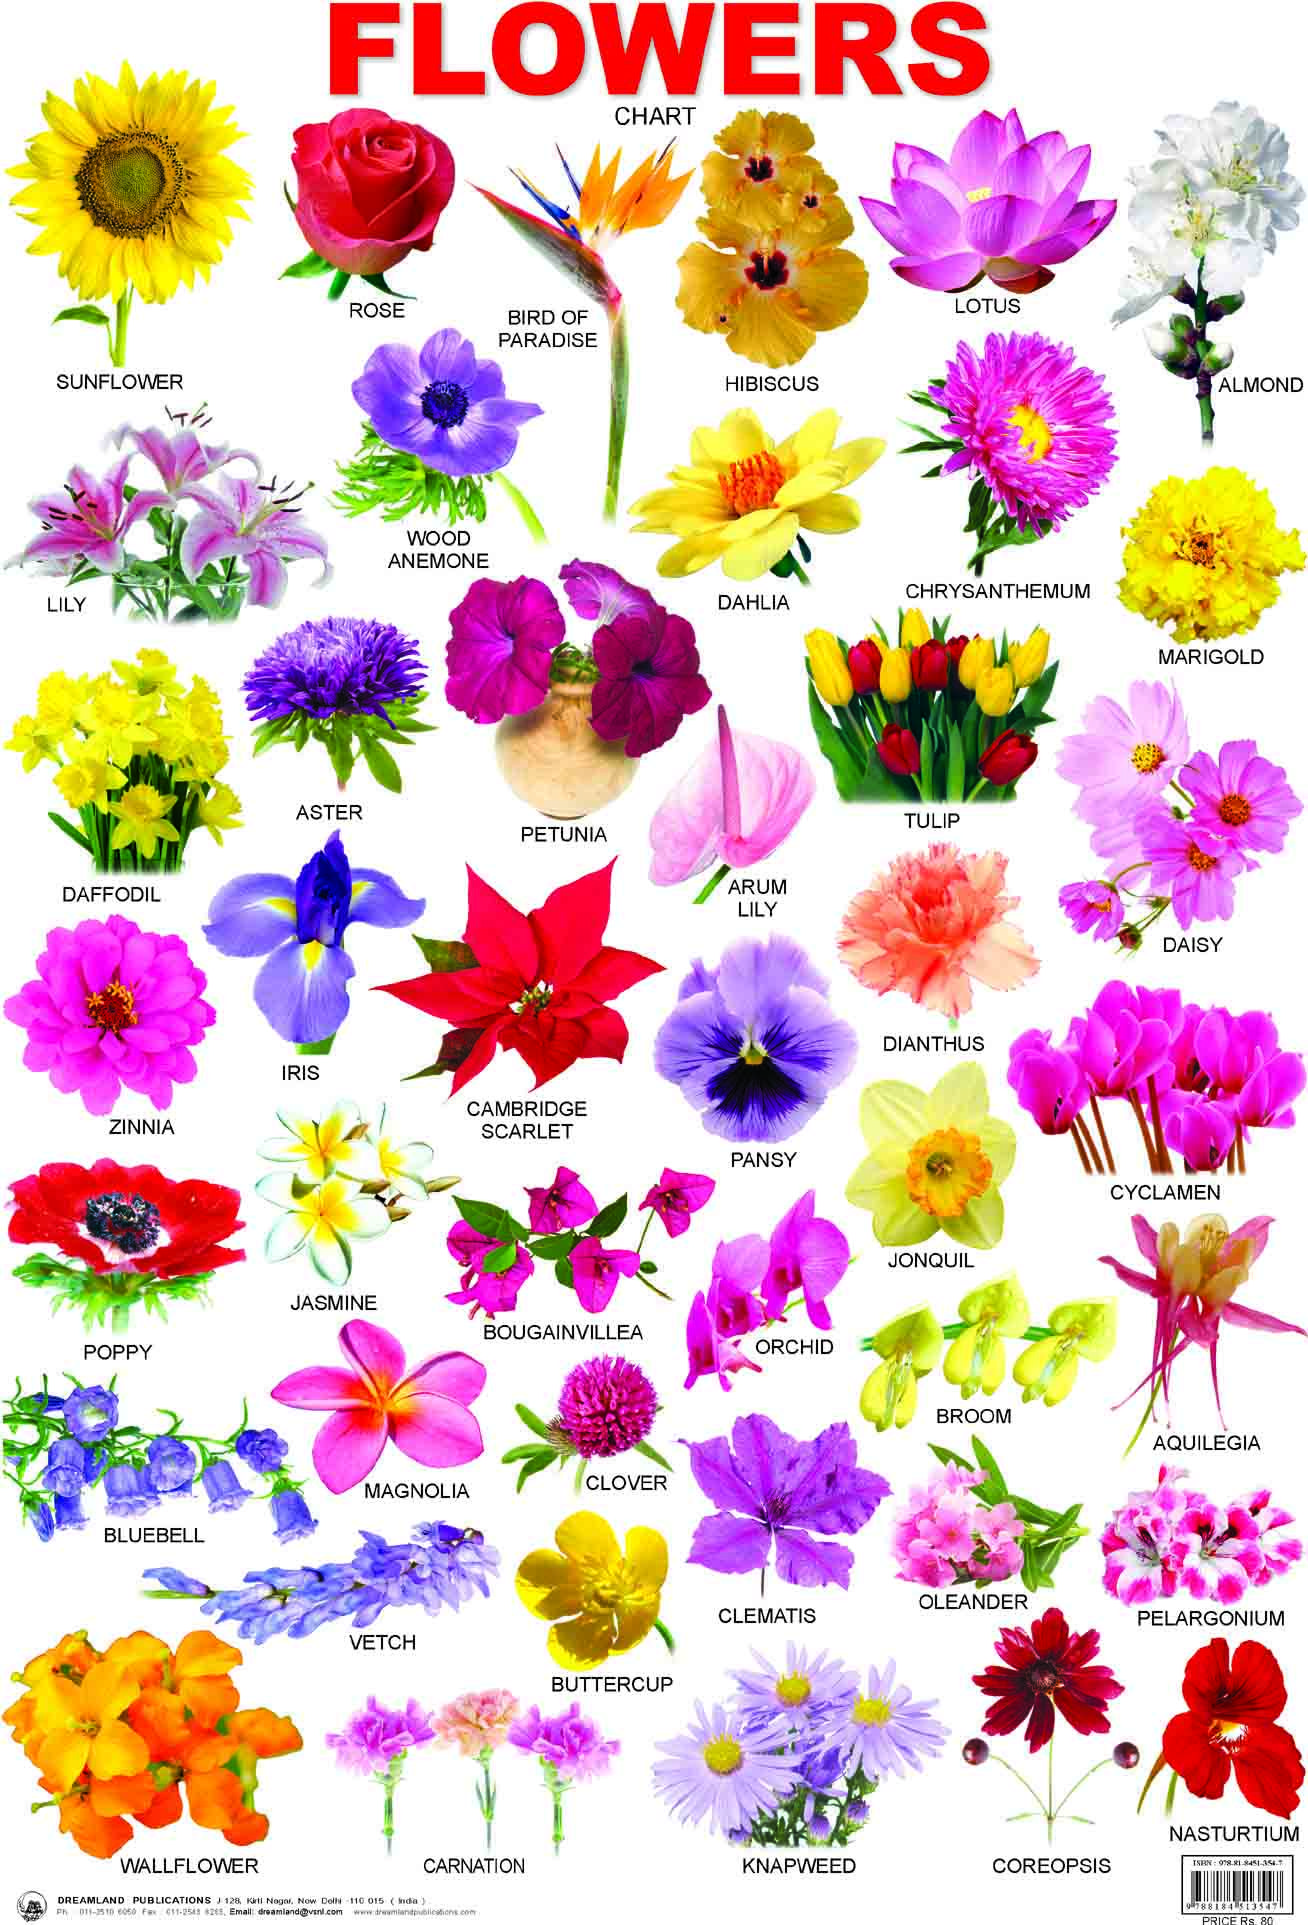 Indian Flower Name List With Image Picture In France For Girl Blue Hindi Names Female Japanese Kore Indian Flower Names Flower Images With Name List Of Flowers